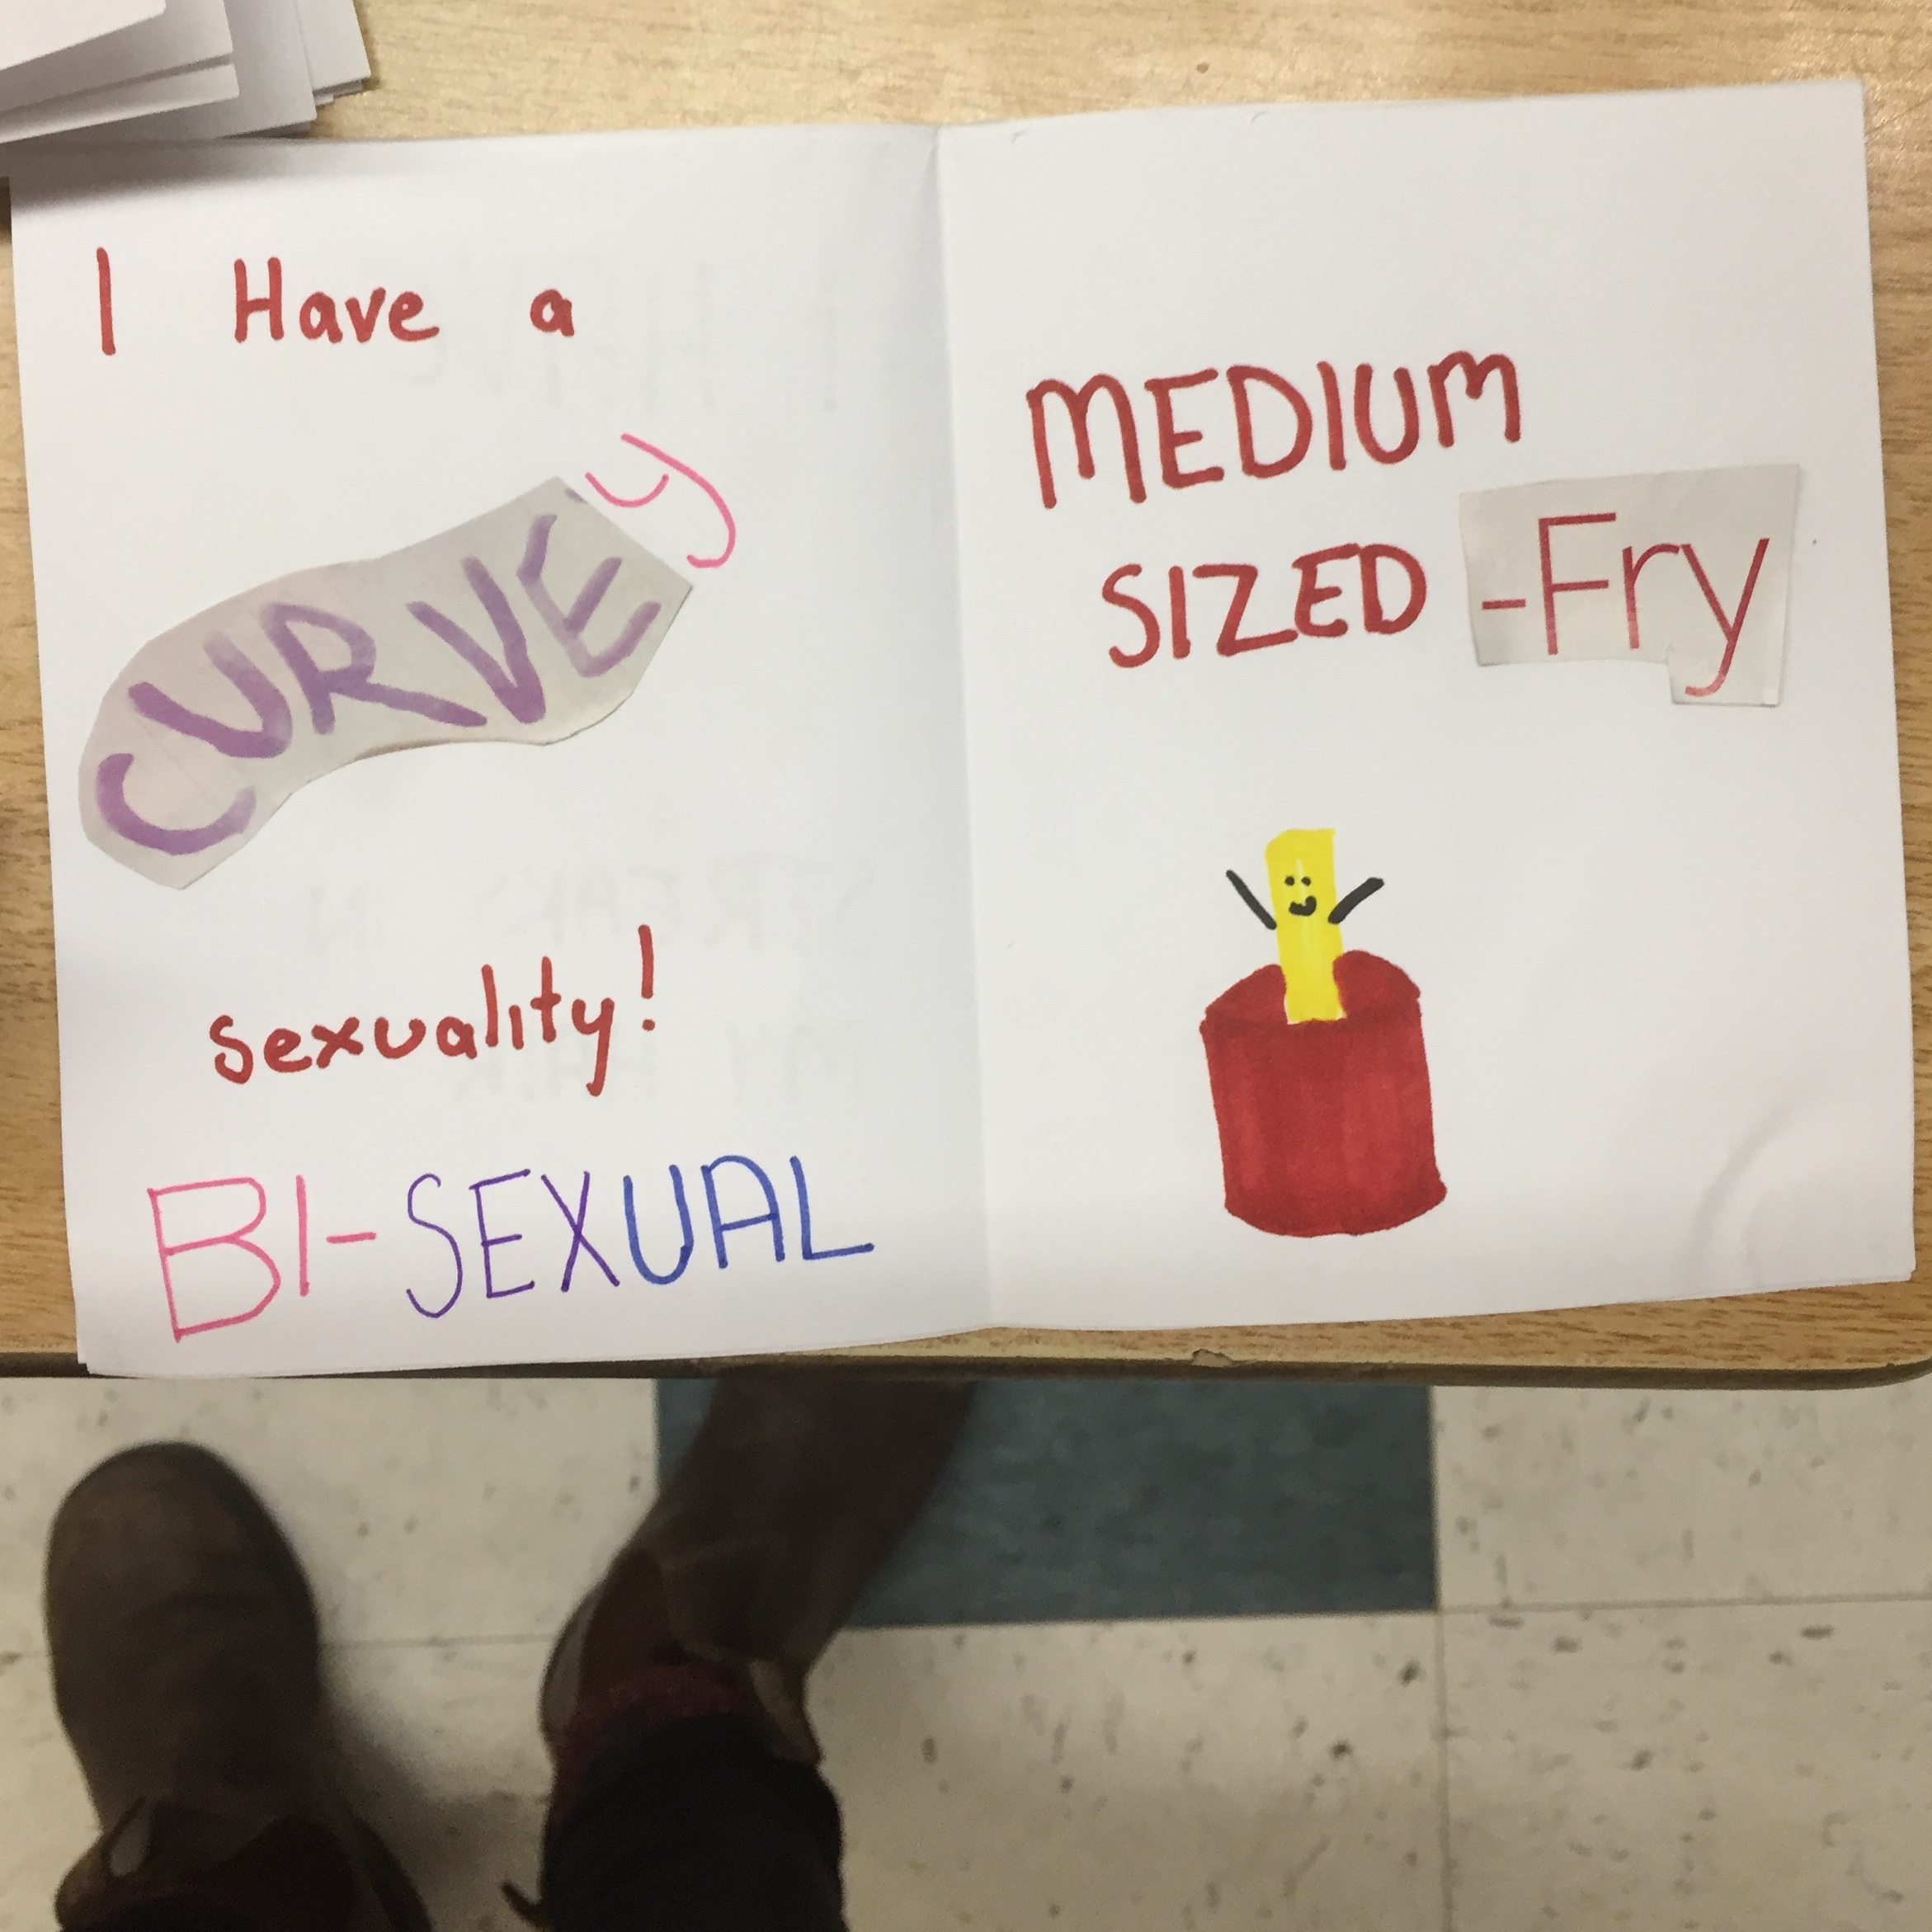 These are select images from students' zines made in-class, surrounding the topic of body image and what we like about ourselves.